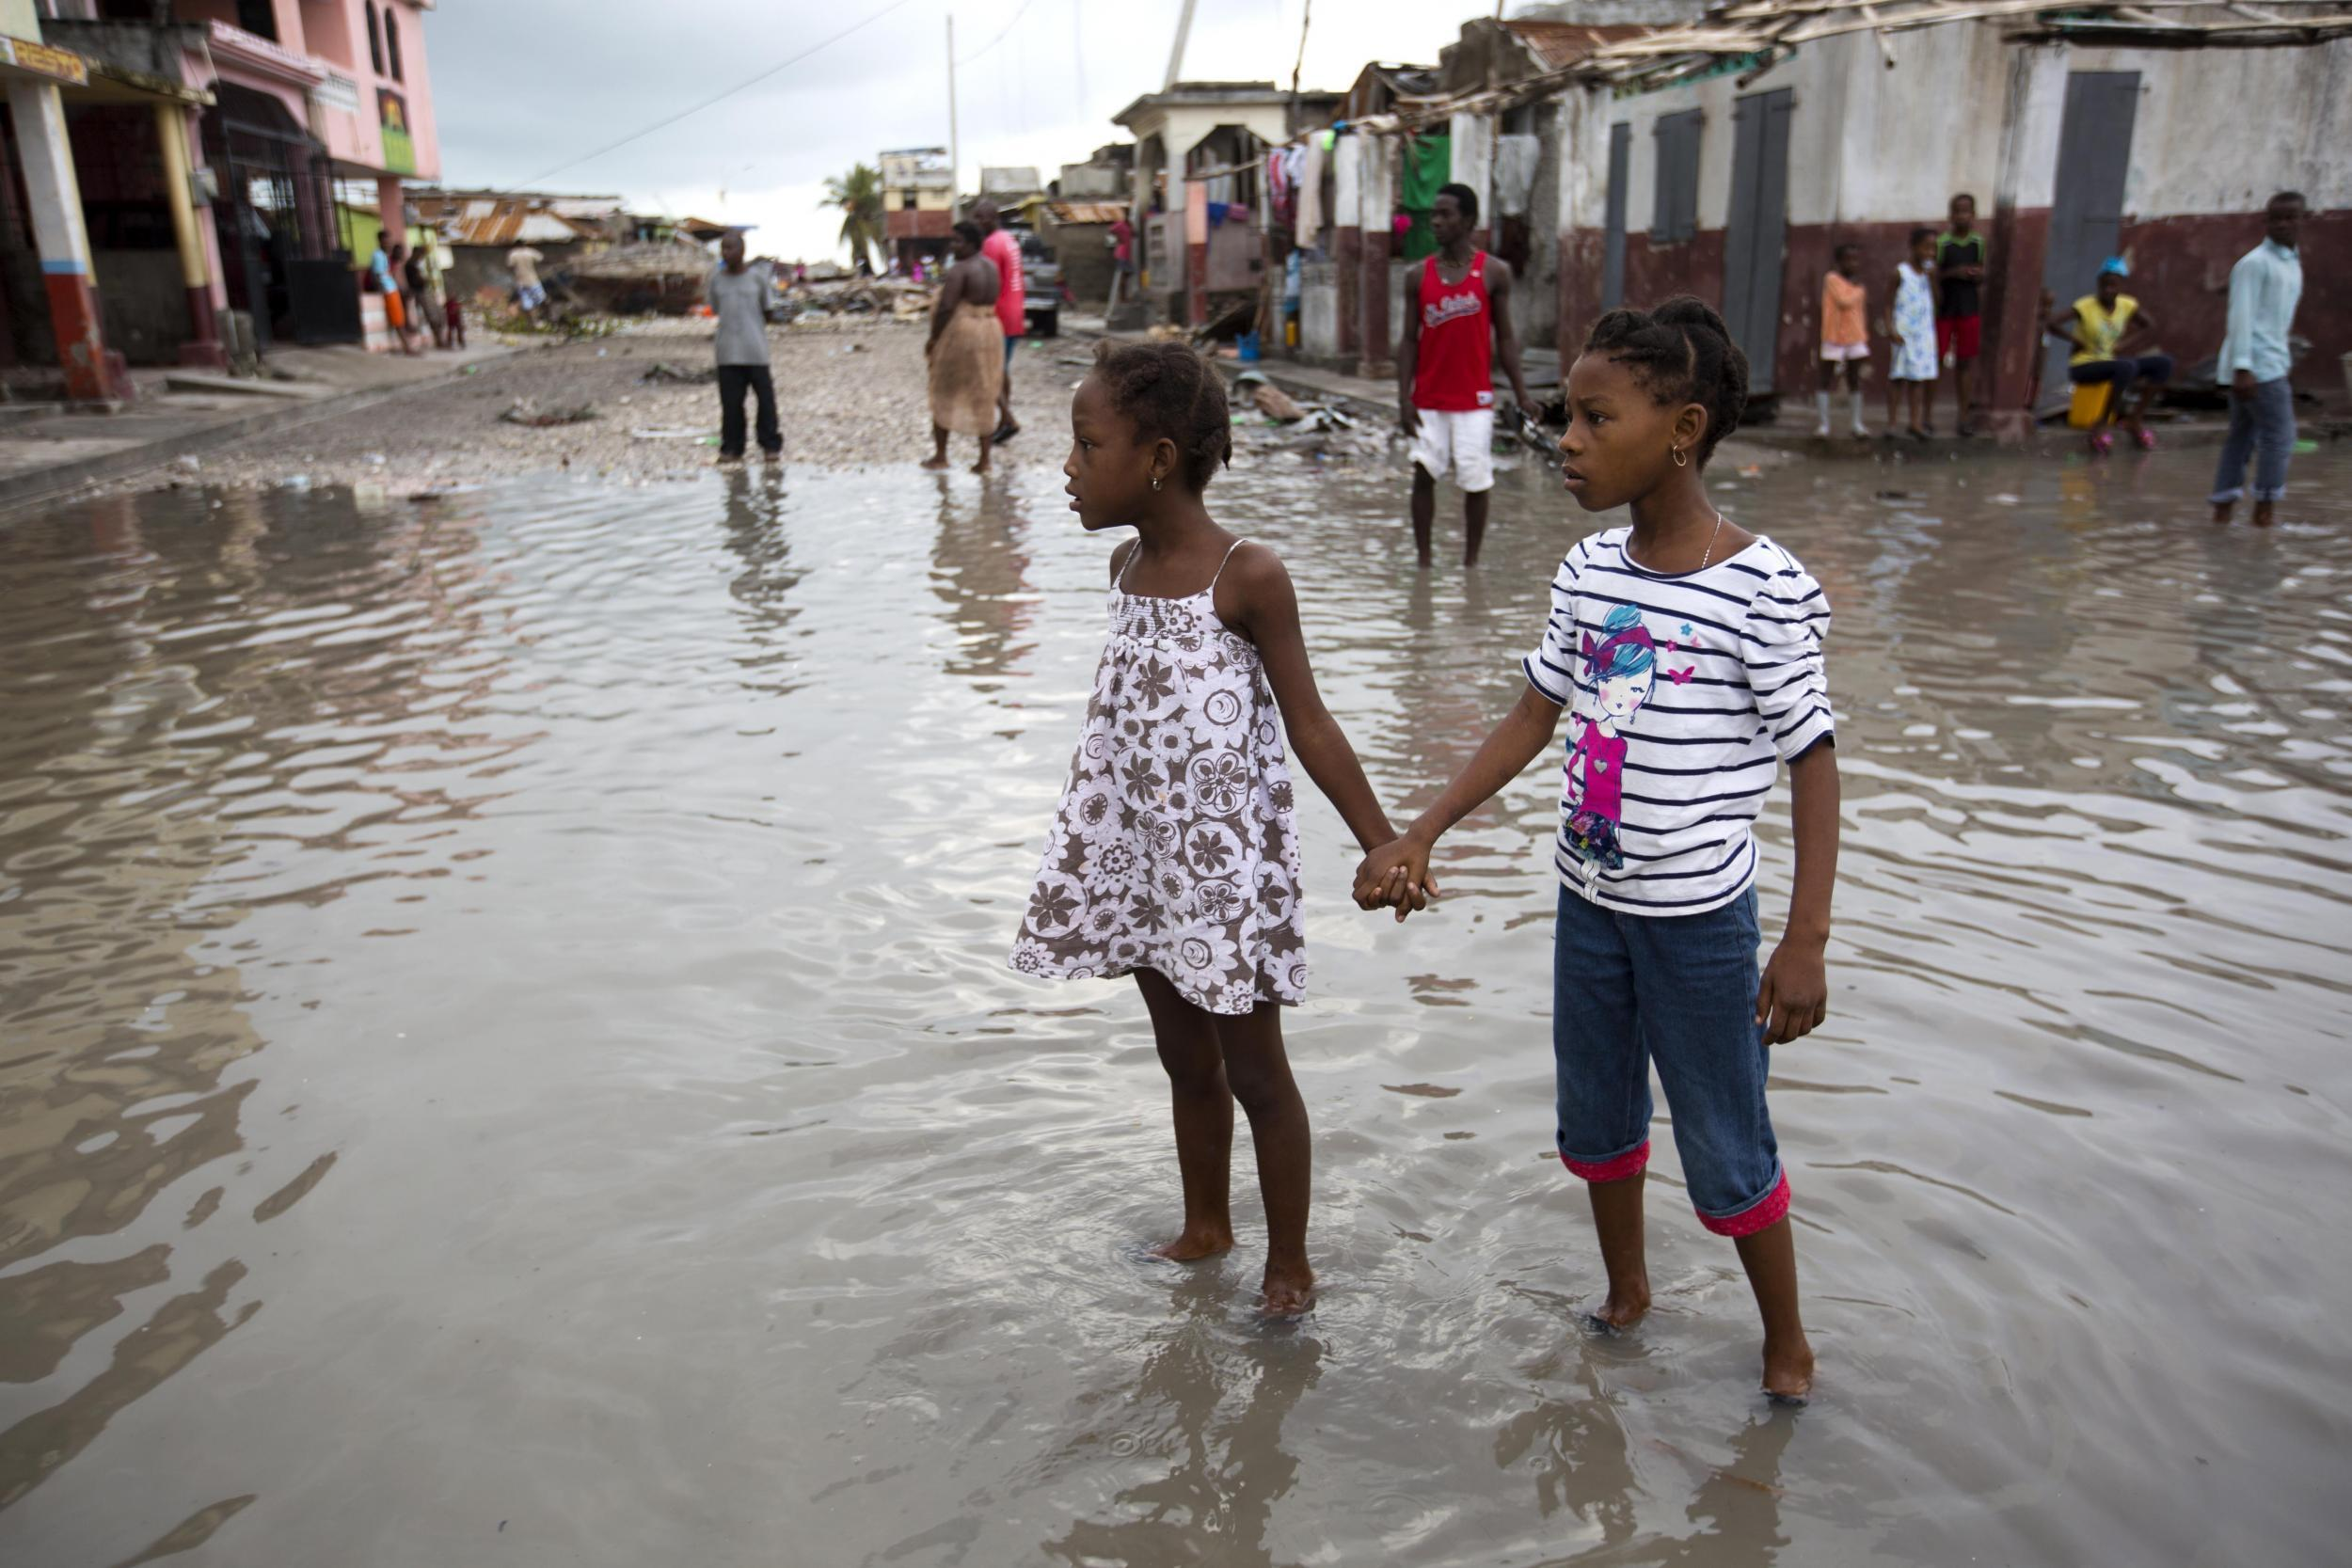 Hurricane Matthew In Haiti The Death Toll Stands At But The - Poorest countries in the western hemisphere 2016